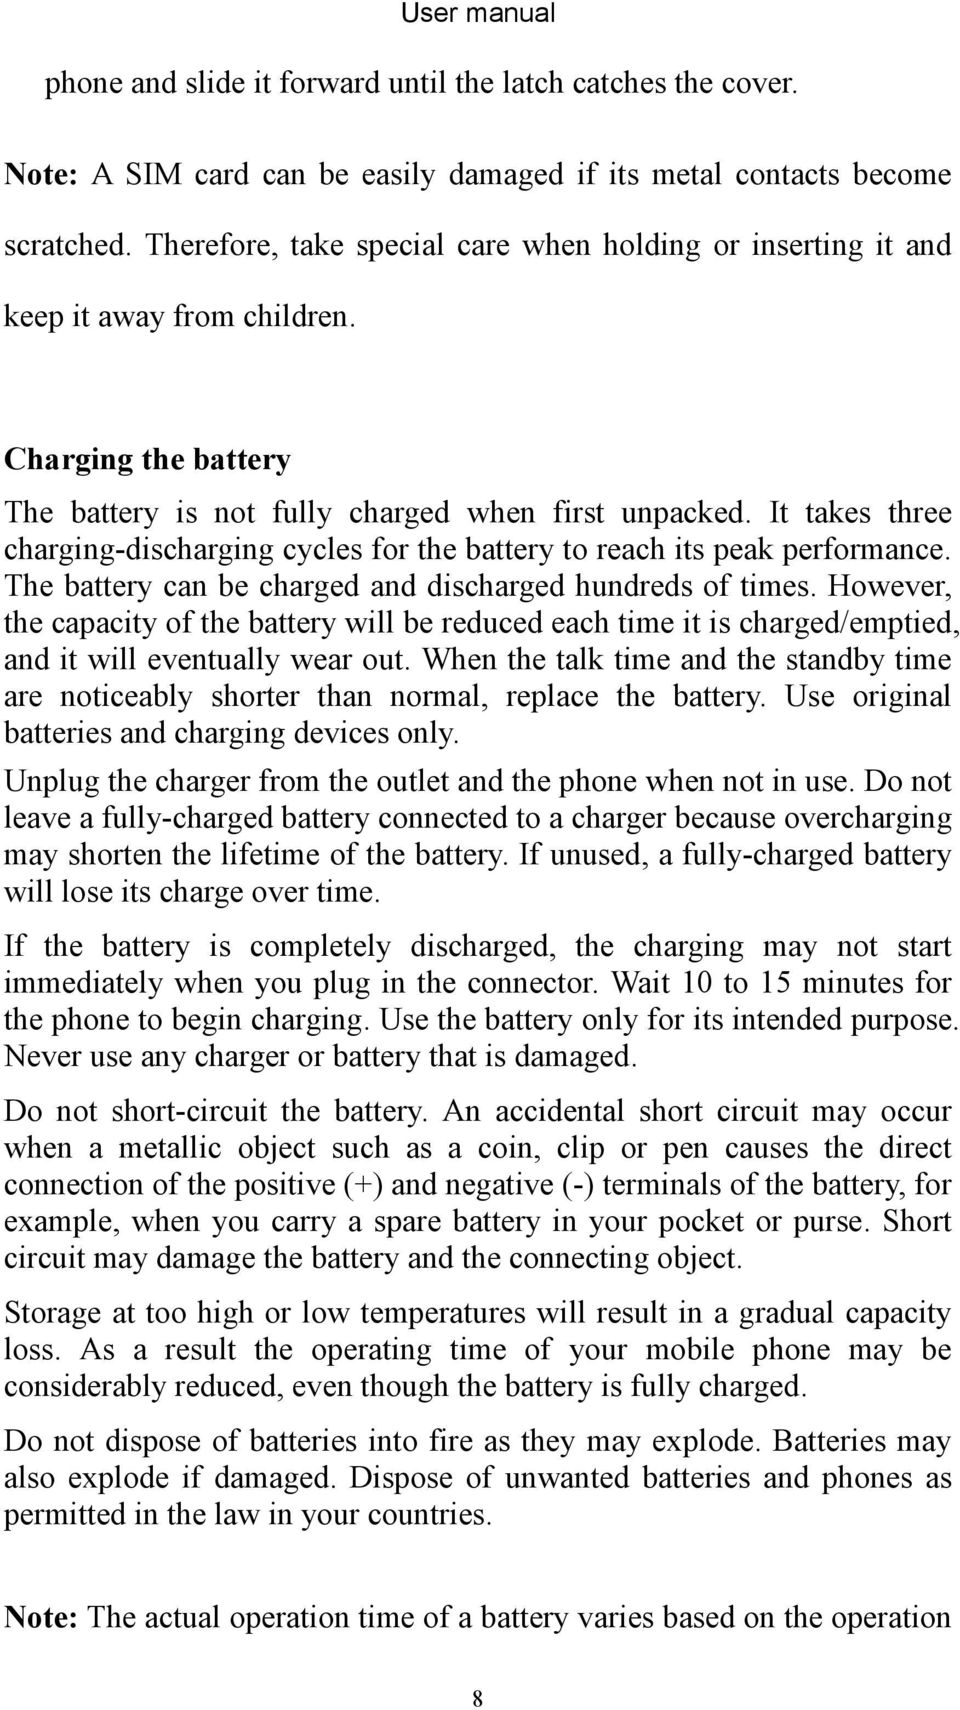 It takes three charging-discharging cycles for the battery to reach its peak performance. The battery can be charged and discharged hundreds of times.